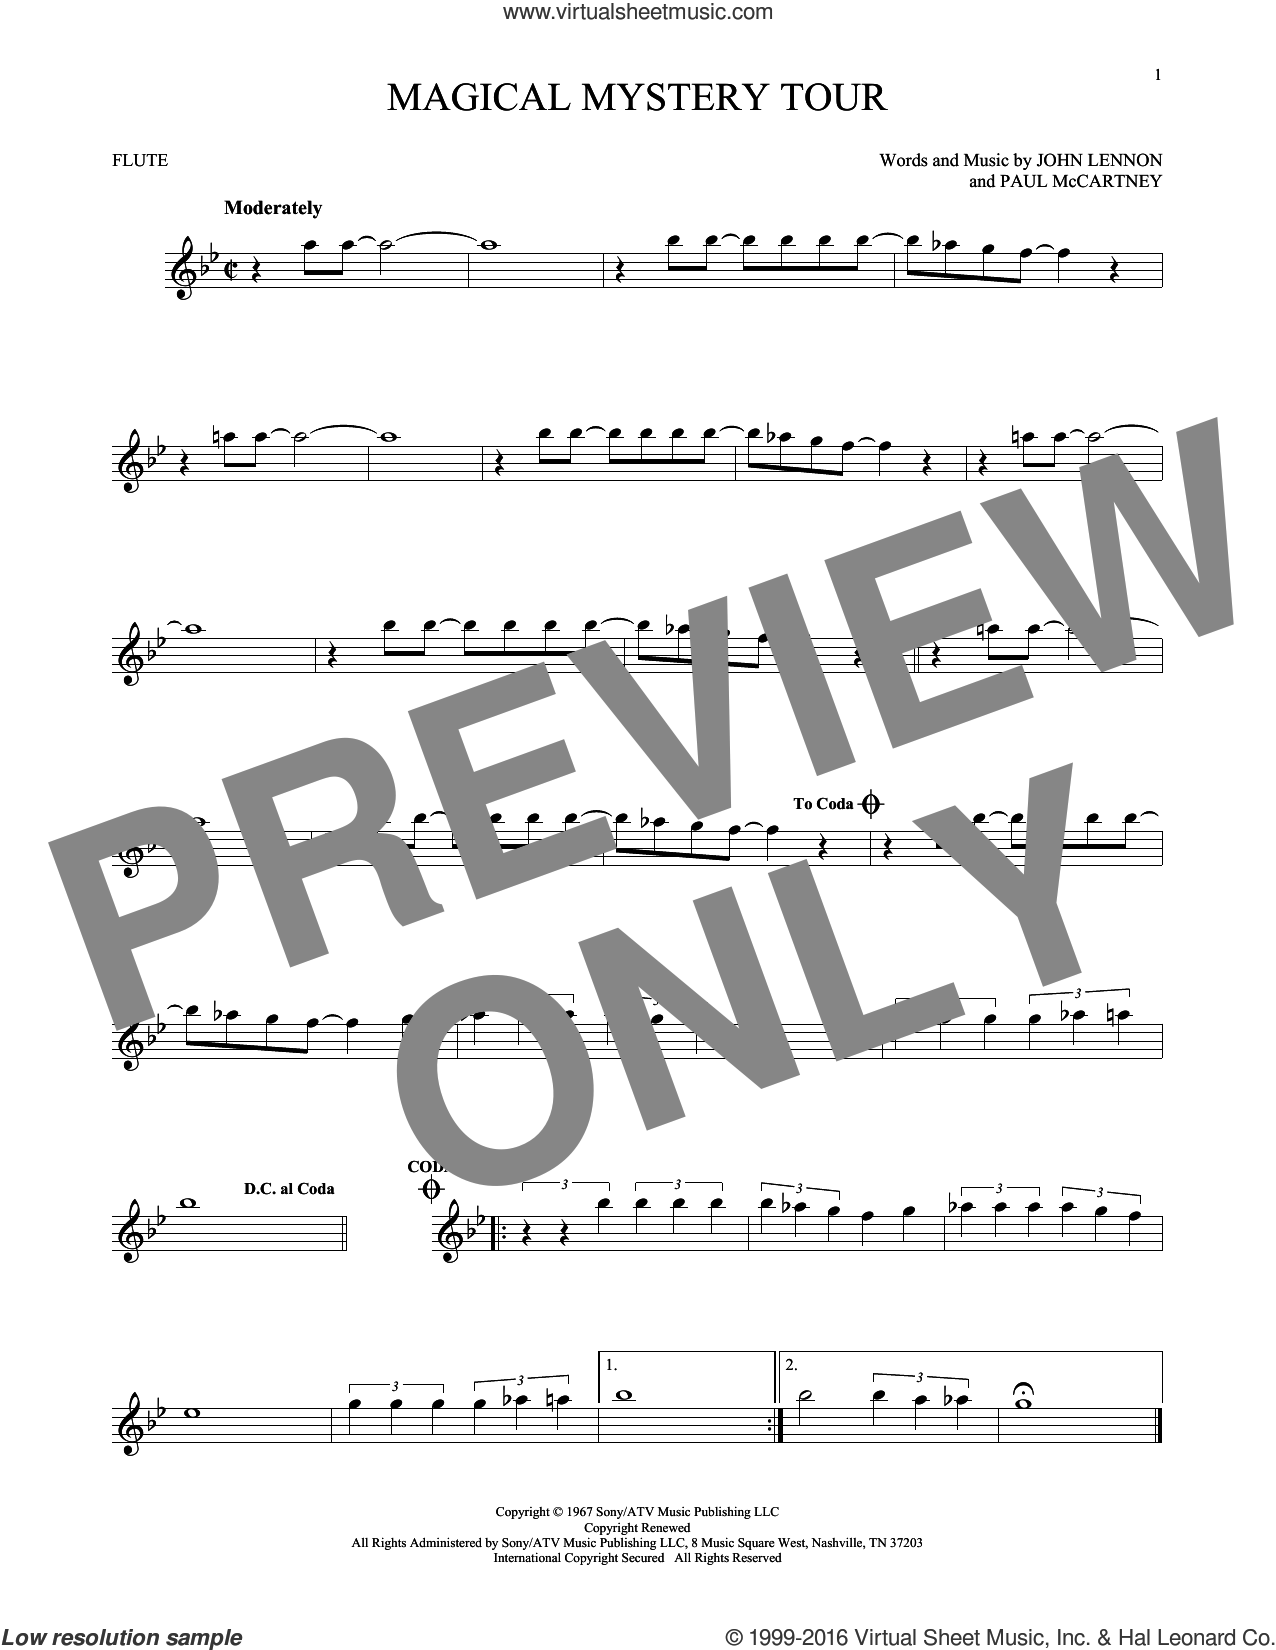 Magical Mystery Tour sheet music for flute solo by The Beatles, John Lennon and Paul McCartney, intermediate skill level